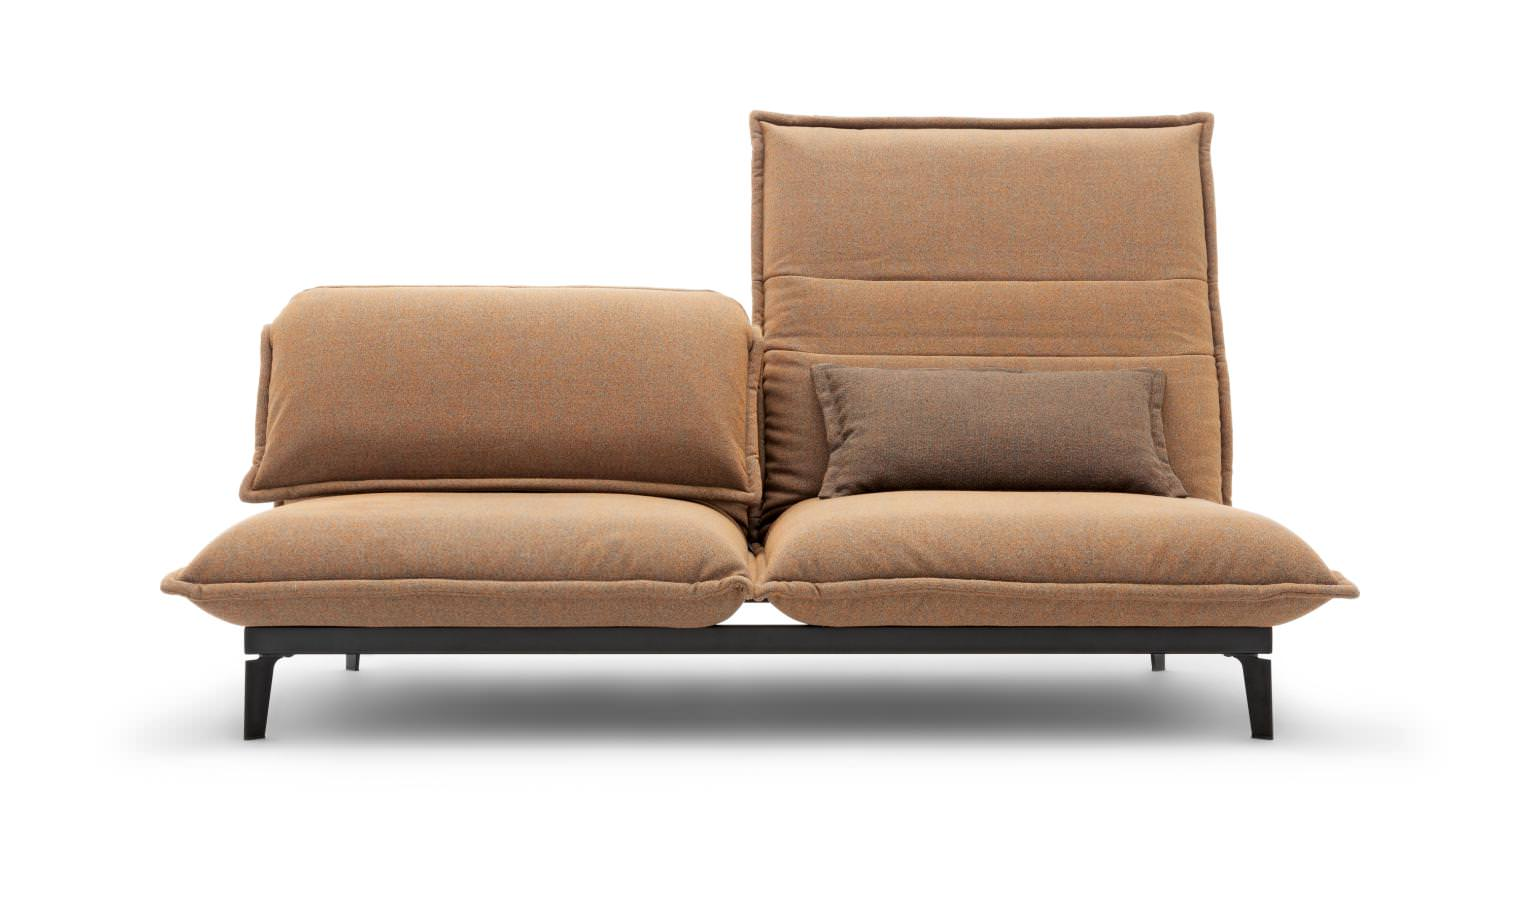 Bettsofa Rolf Benz Rolf Benz Nova Germany